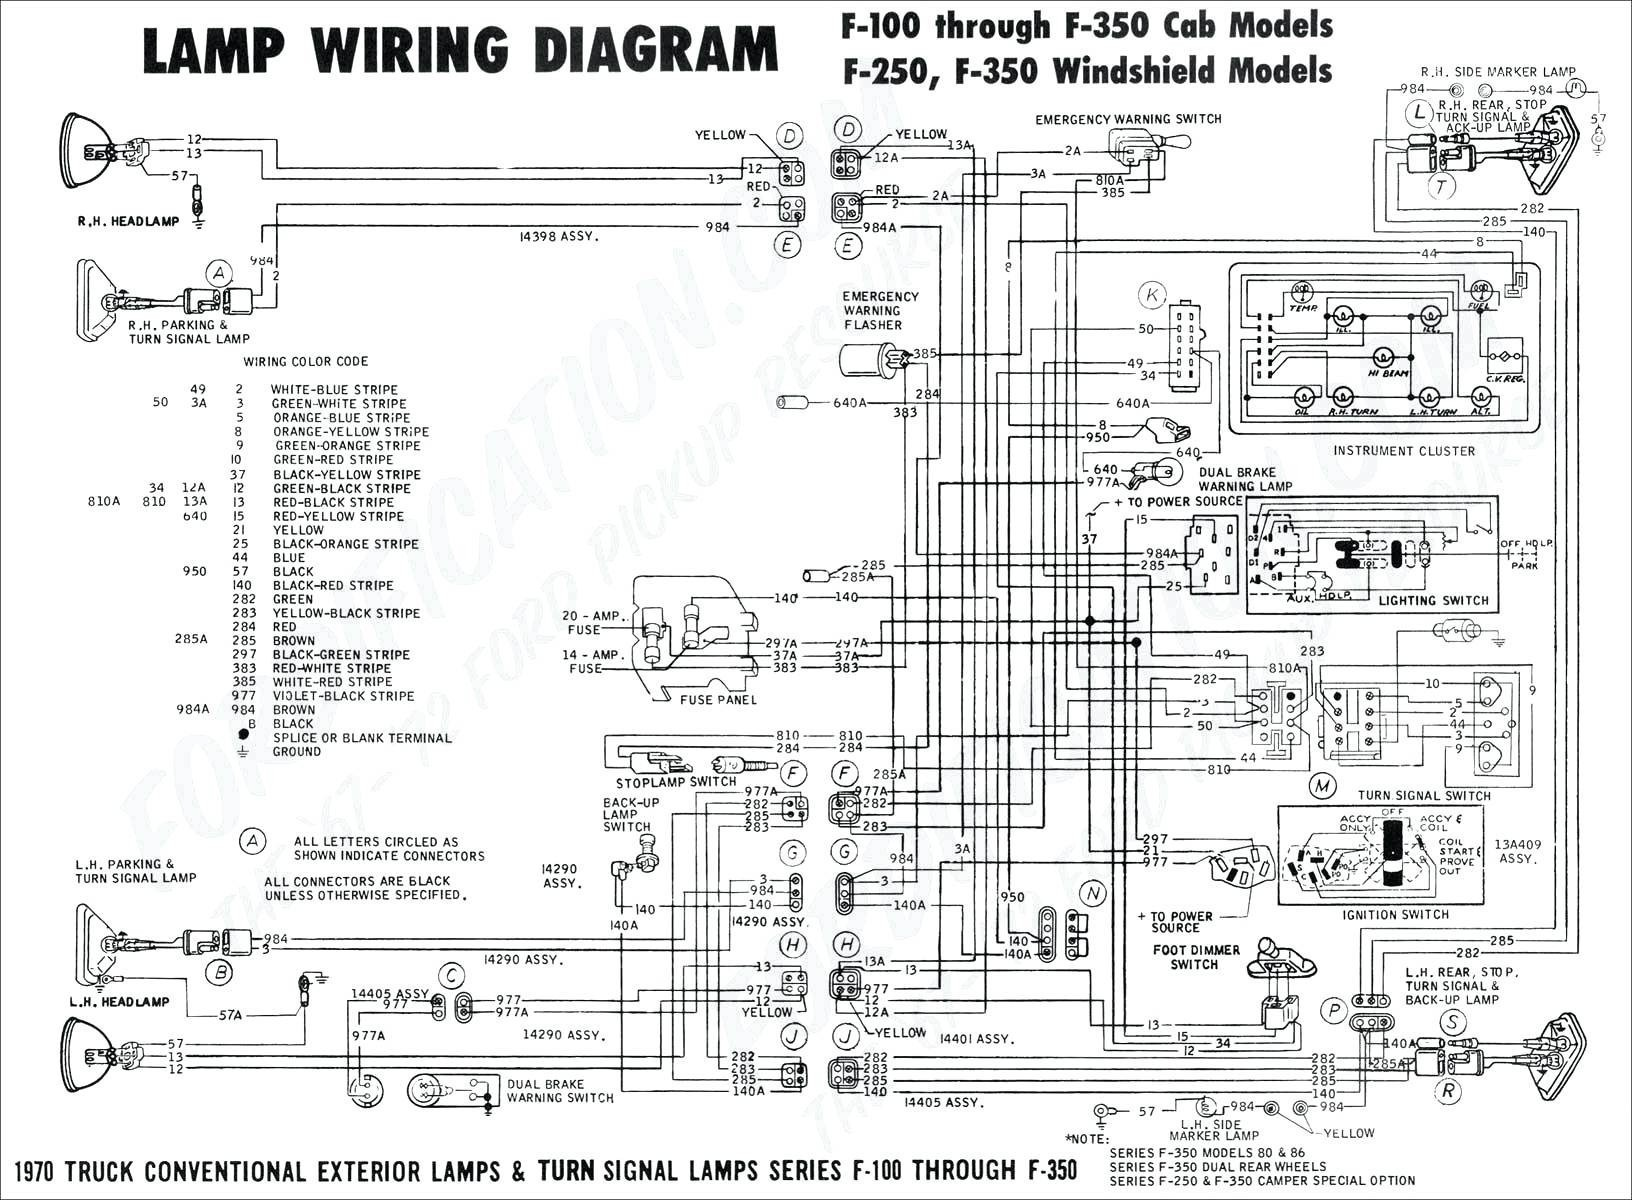 Simple Diesel Engine Diagram 97 ford F 350 7 3 Diesel Engine Diagram Of Simple Diesel Engine Diagram Pin by Jimmiejanet Testellamwfz On What Does An Engine with Turbo